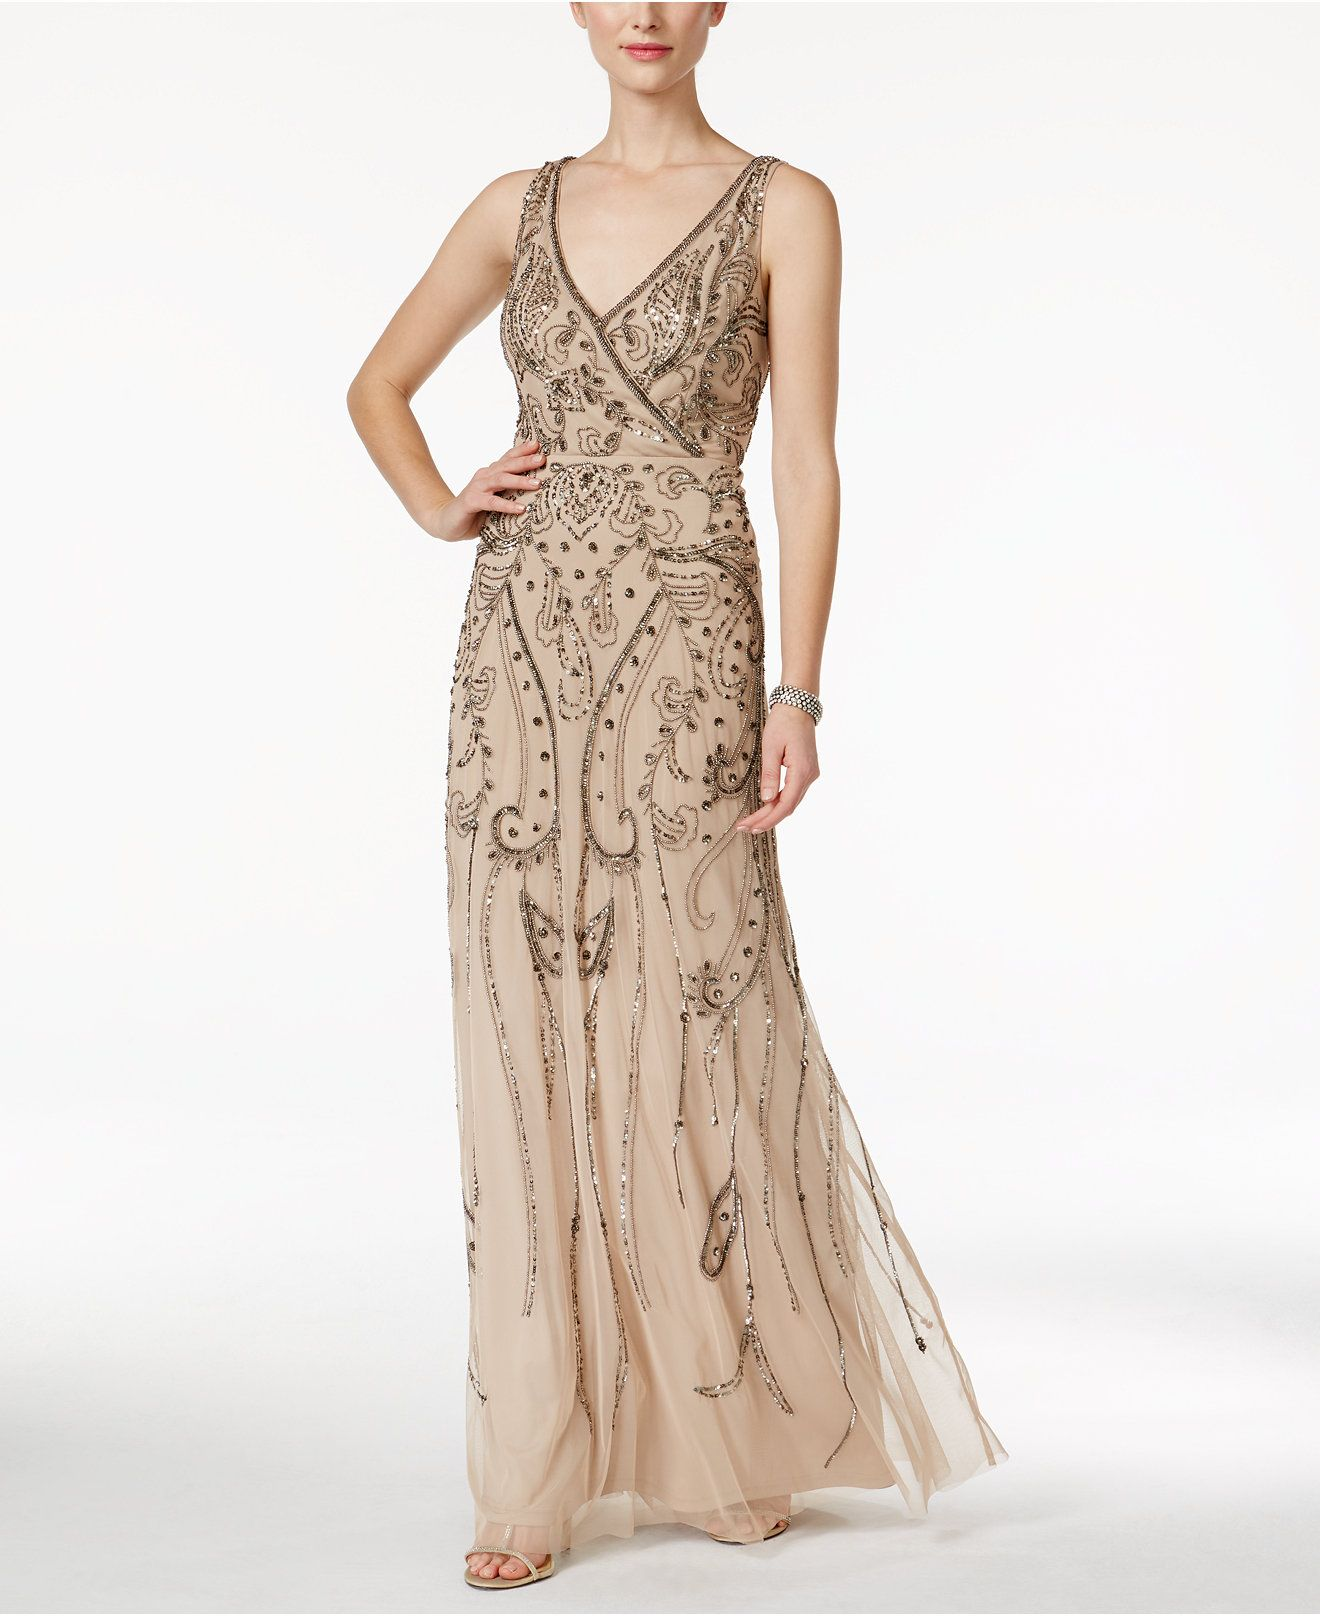 9e24fef0130 Adrianna Papell Beaded Surplice Evening Gown - Dresses - Women - Macy s